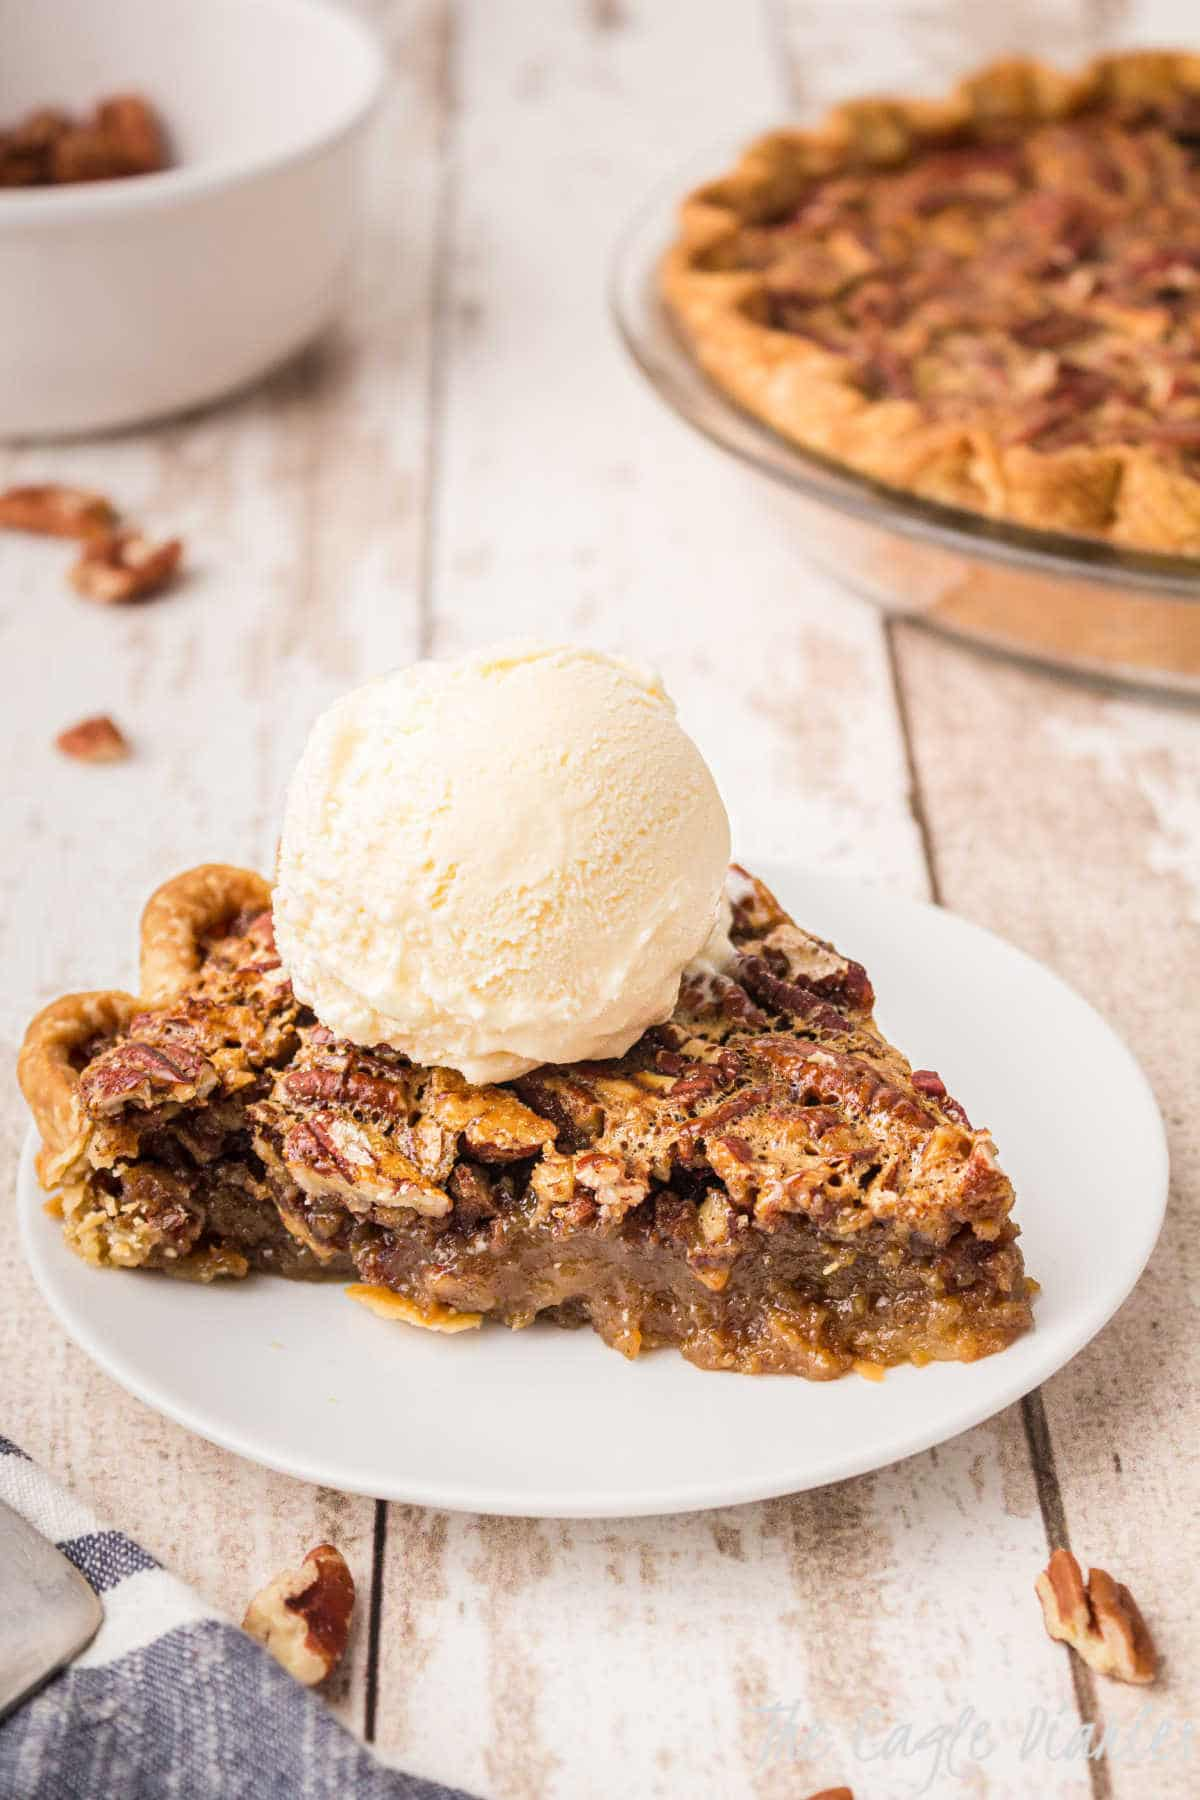 a piece of pecan pie with a scoop of ice cream on top